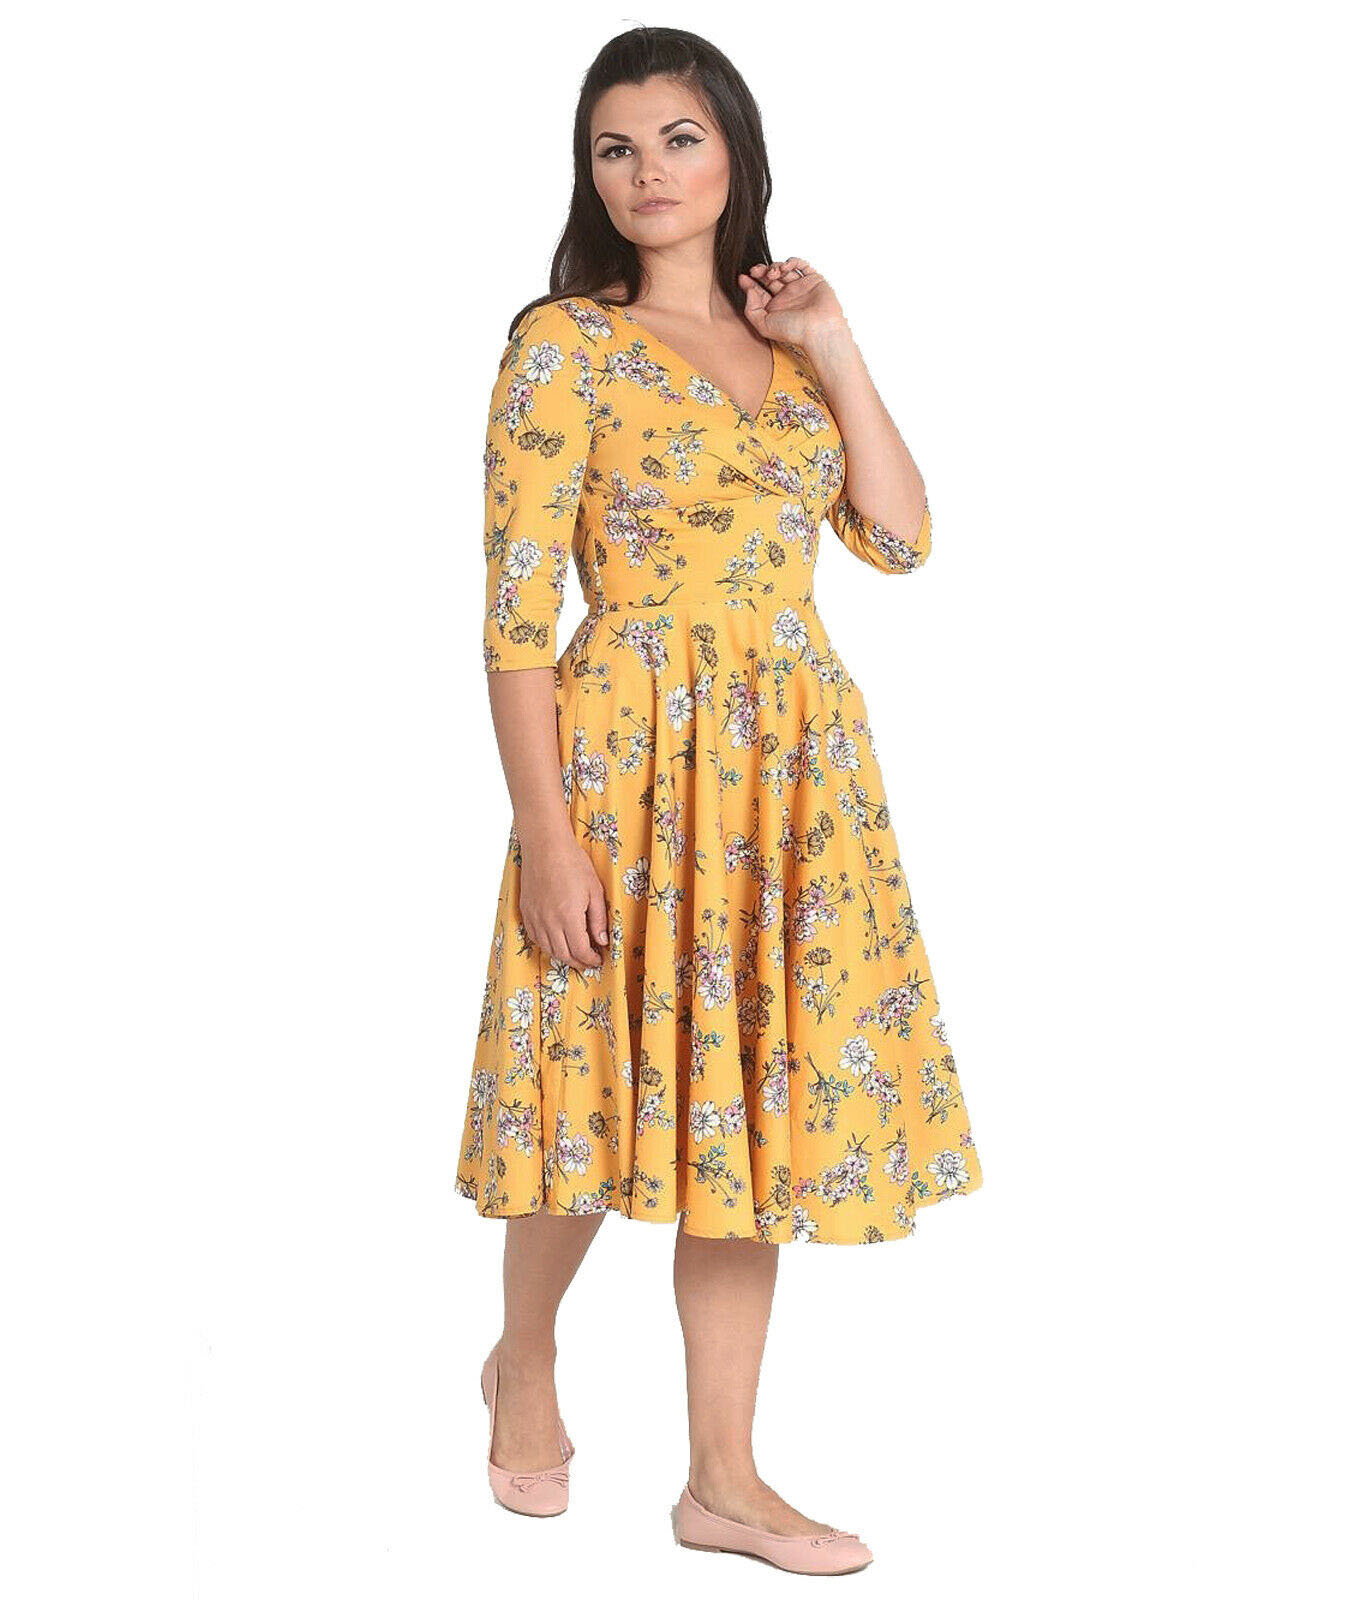 Hell-Bunny-40s-50s-Pin-Up-Vintage-Dress-MURIEL-Flowers-Yellow-All-Sizes thumbnail 15